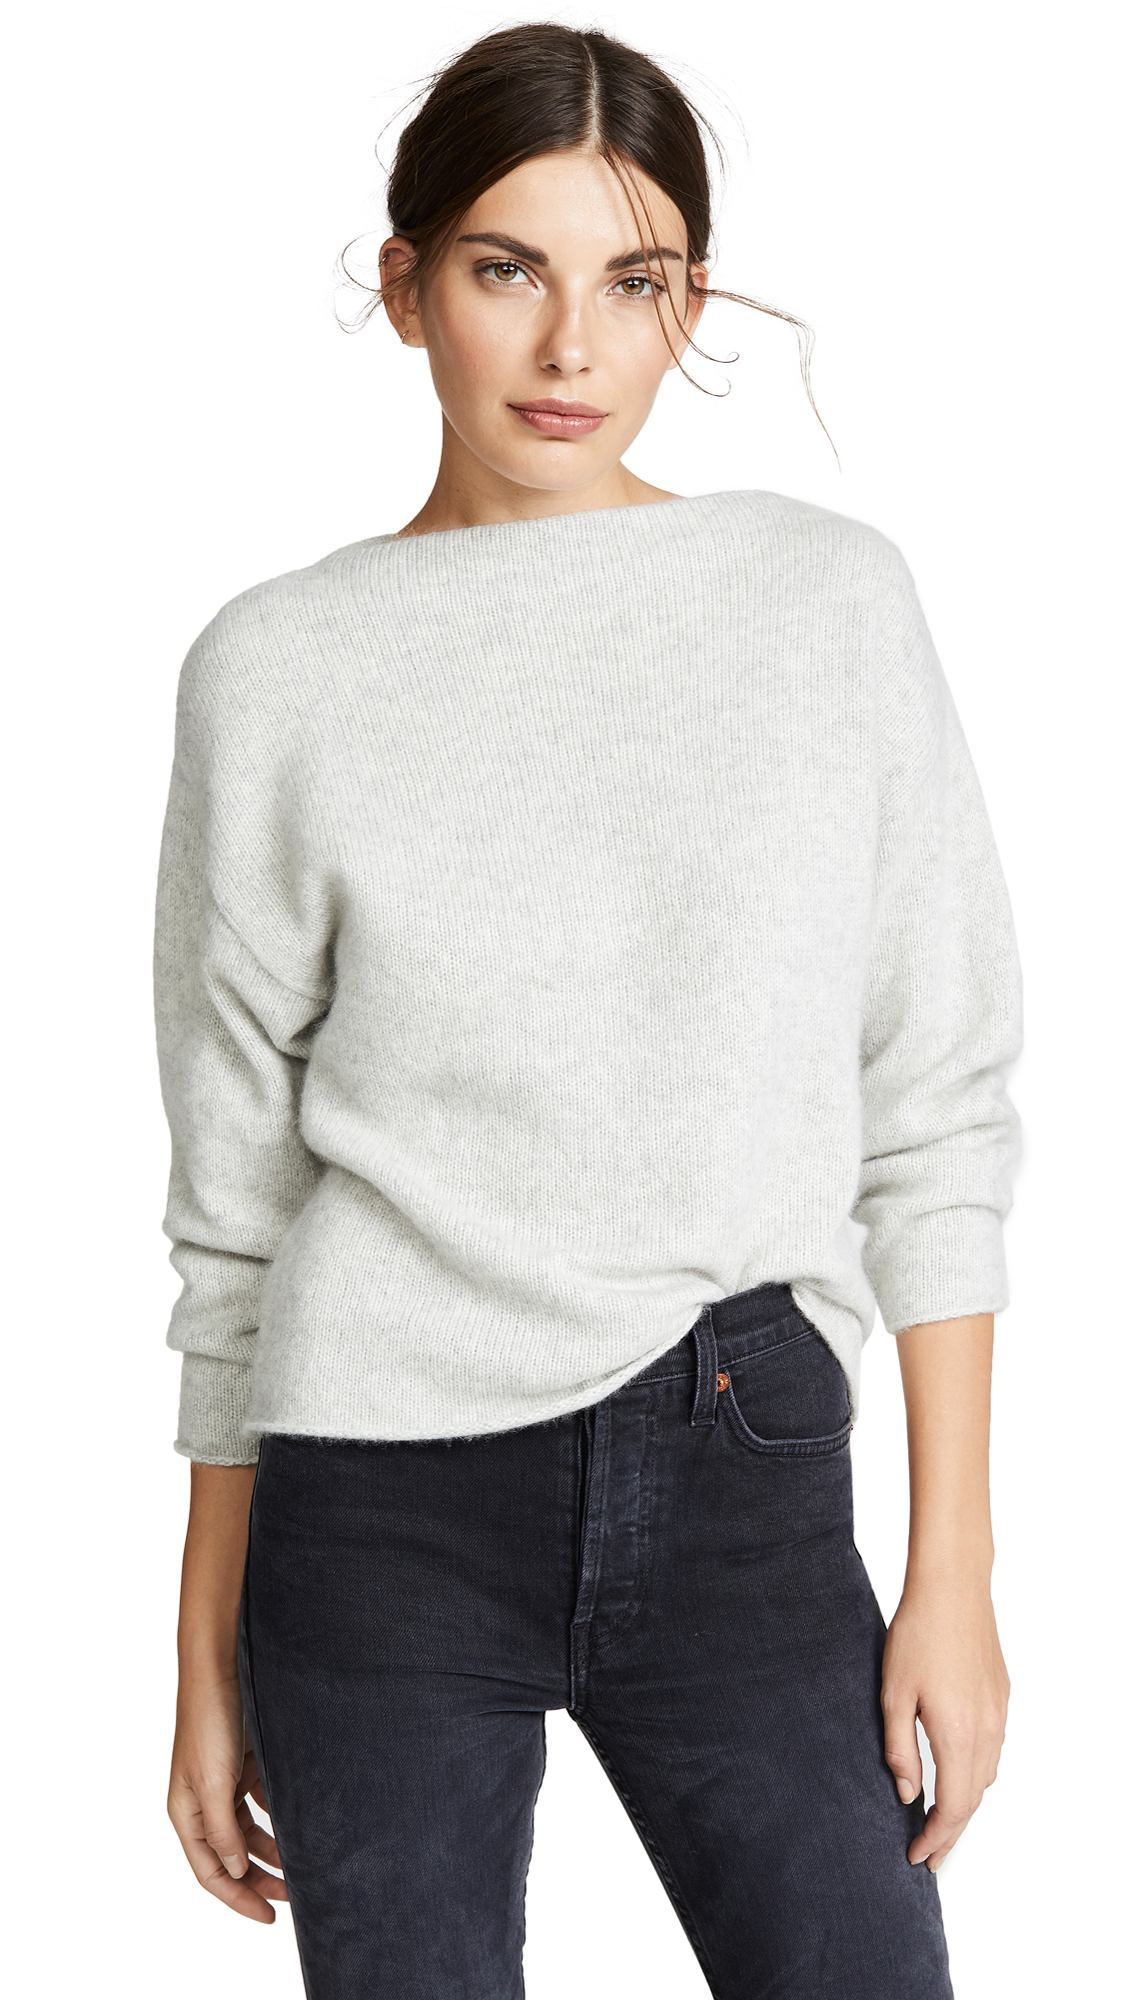 TSE Cashmere Oversized Cashmere Sweater In Ice Grey Melange